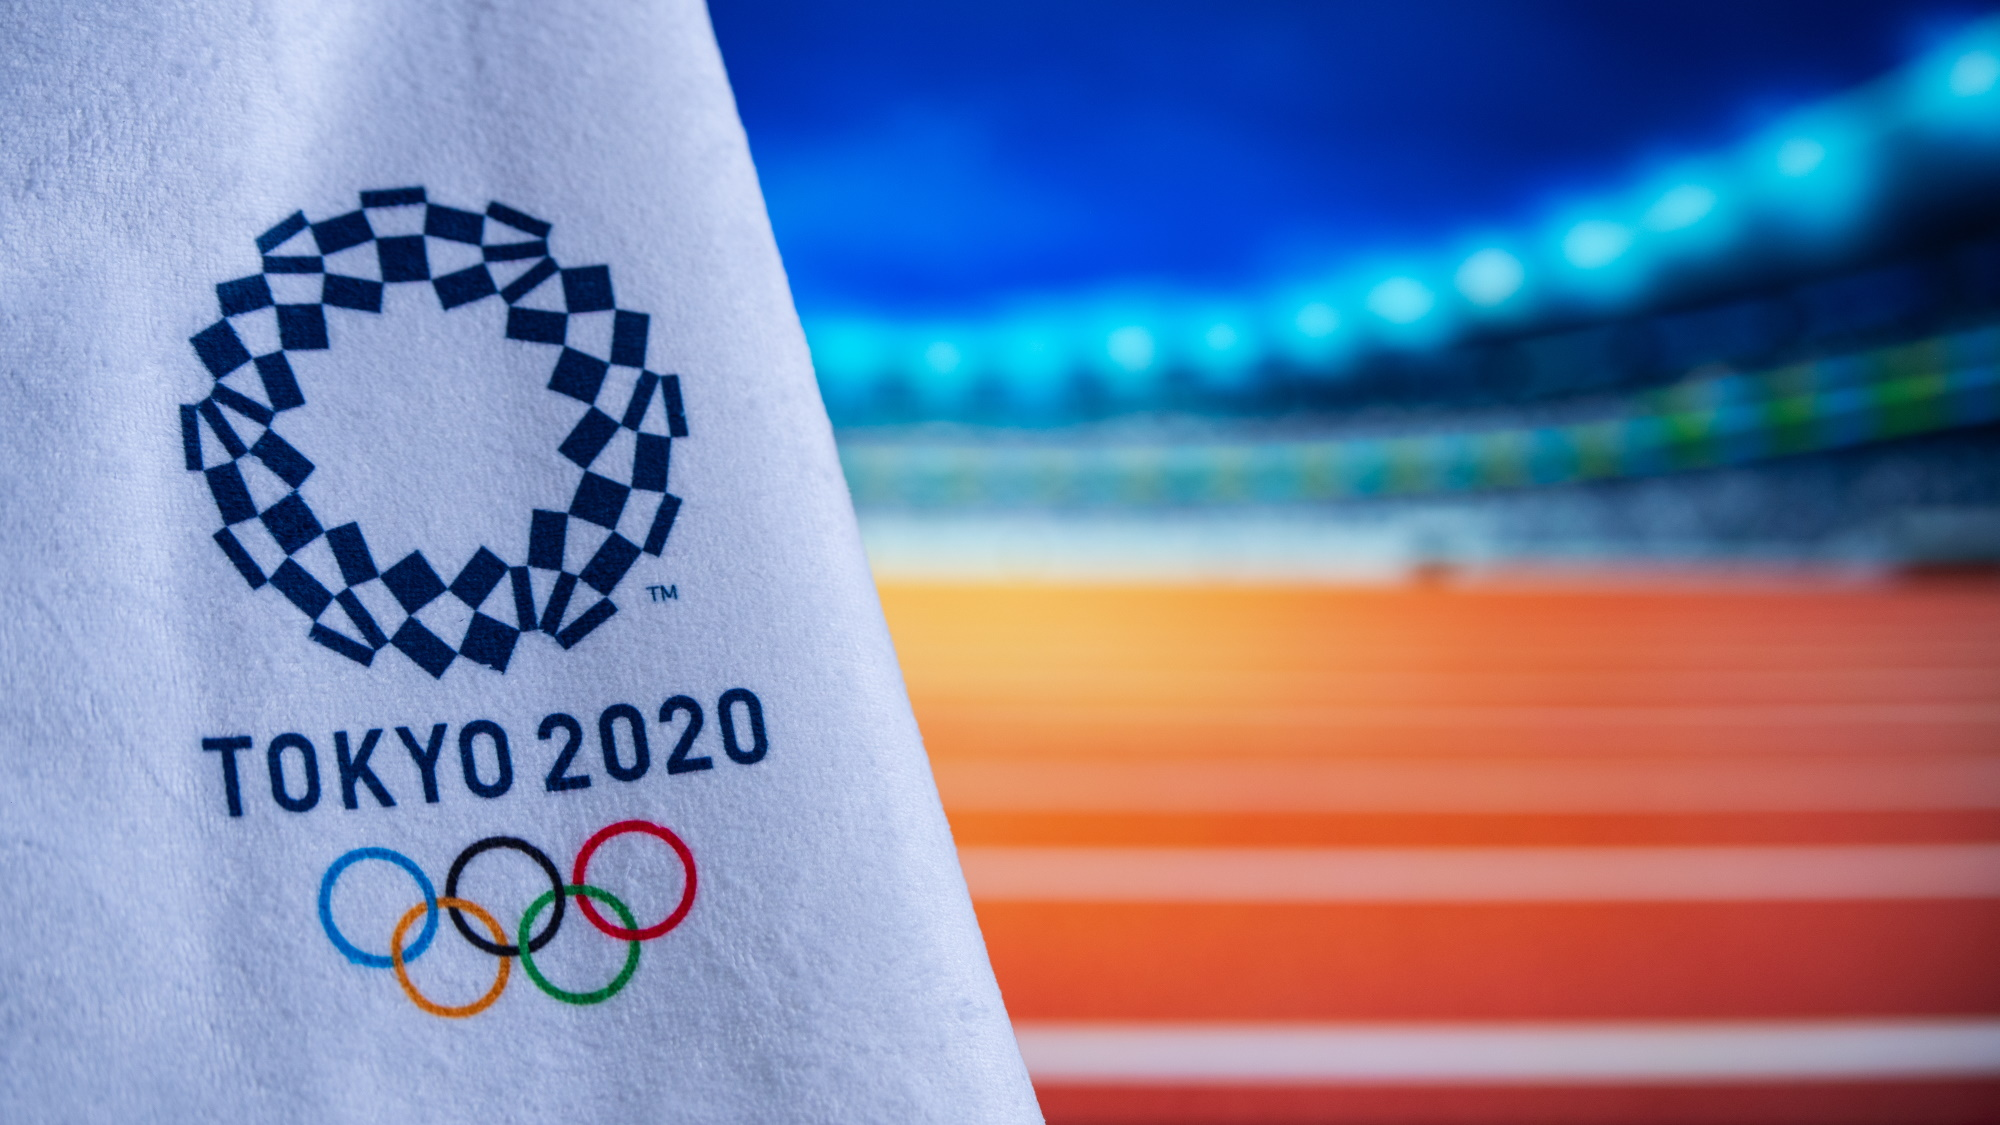 Tokyo 2020: IOC Refugee Olympic Team Tokyo 2020 Announcement – Lausanne